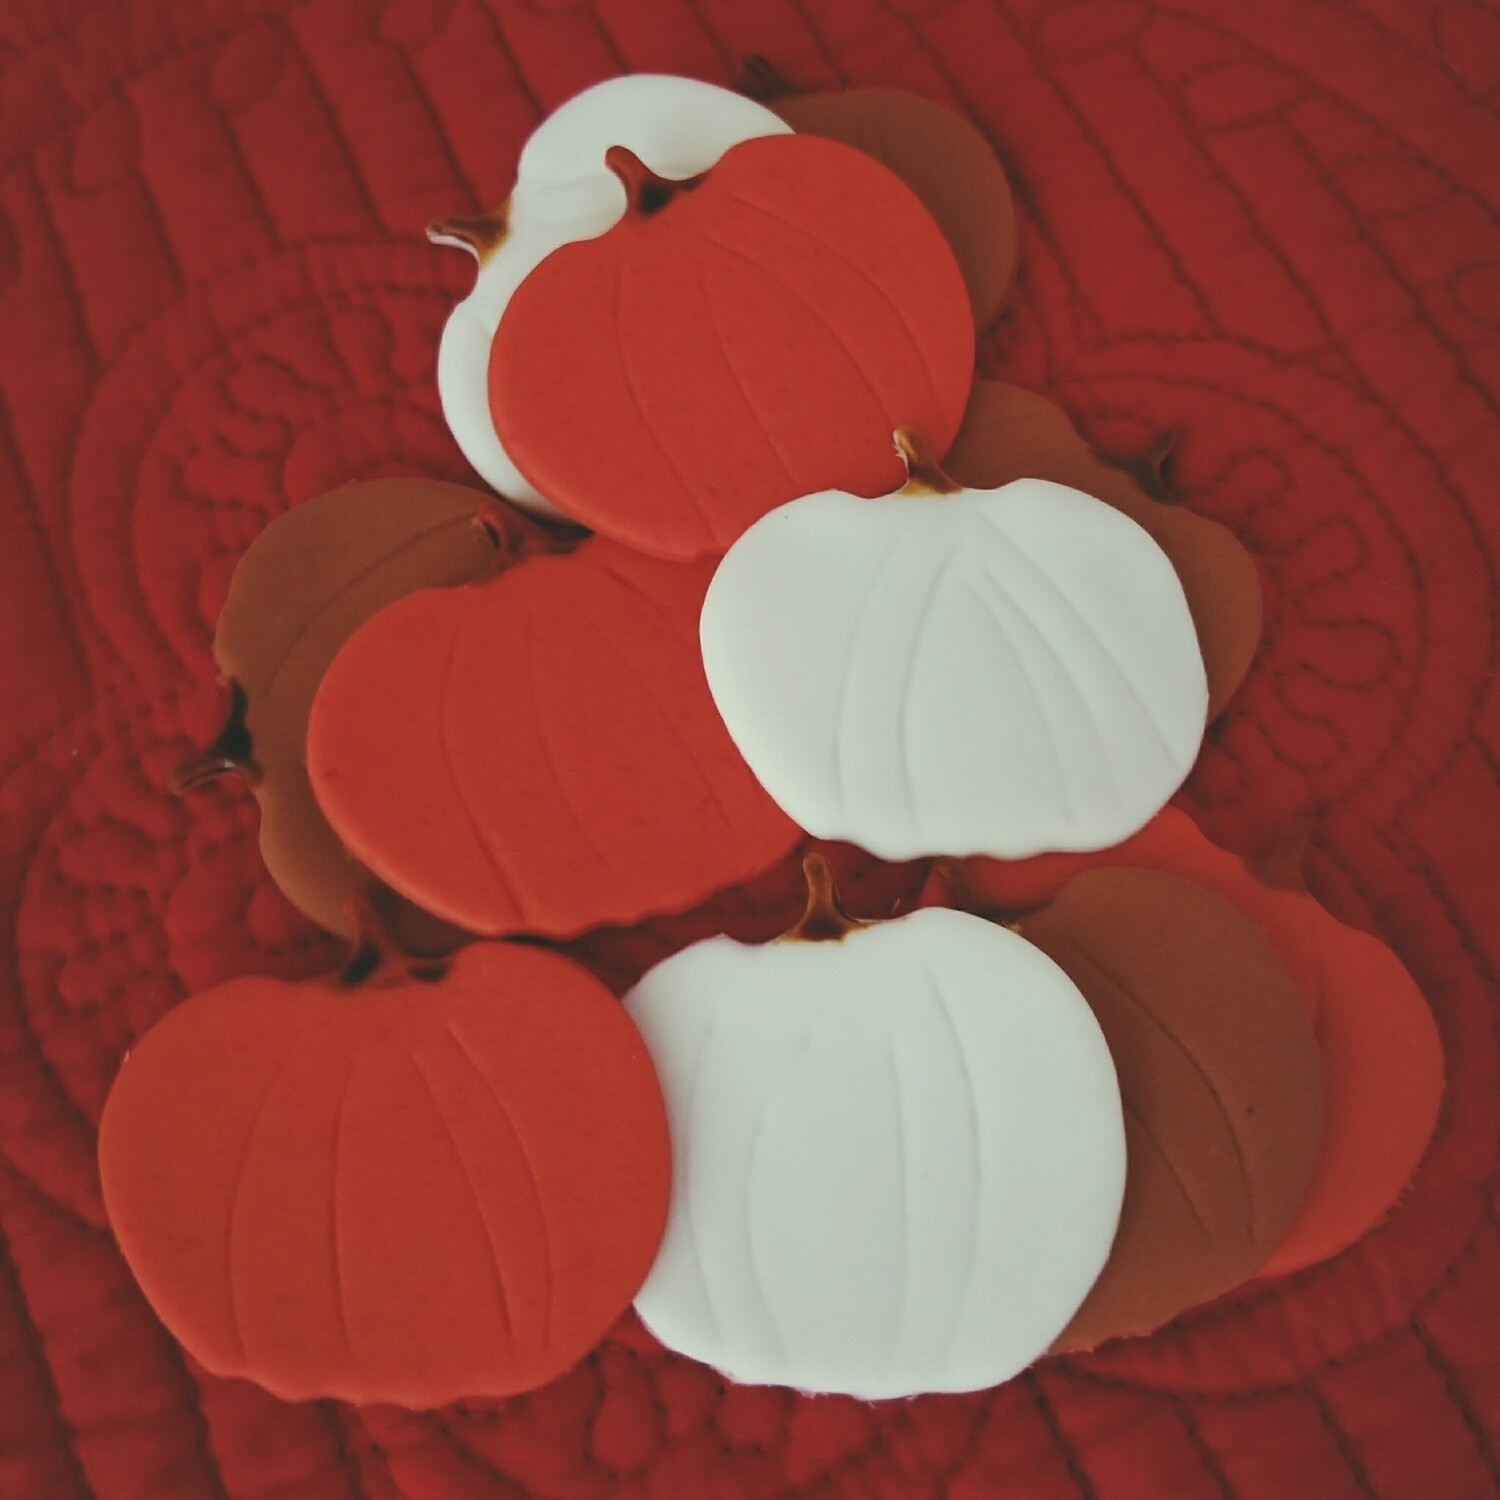 12 Bespoke Fall Cupcake Toppers! (Limited)